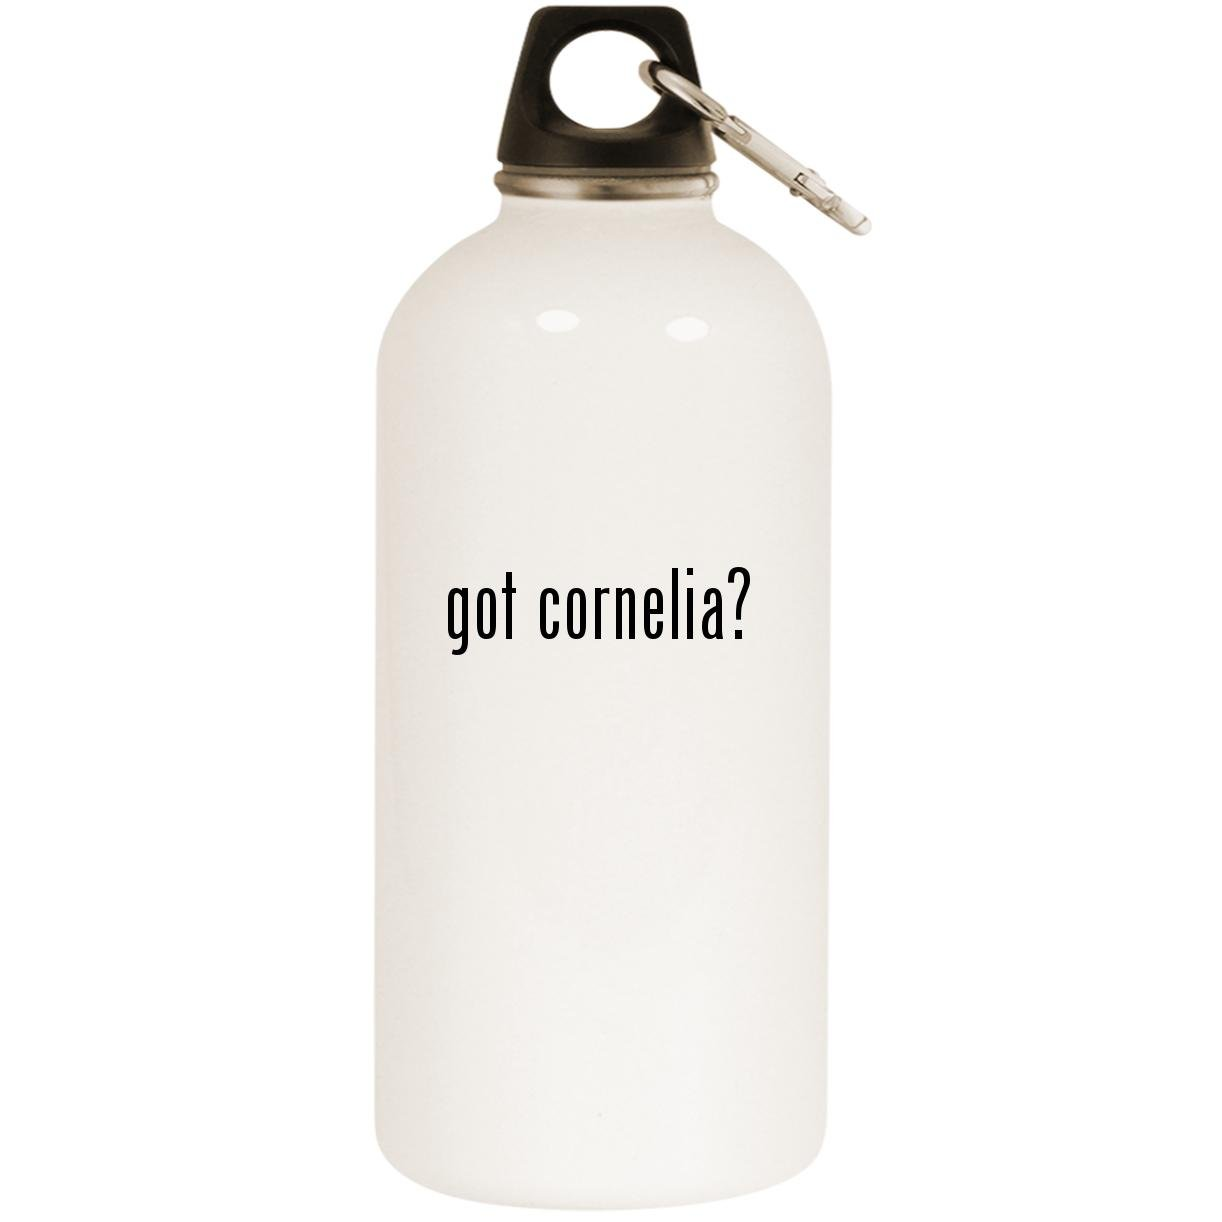 got cornelia? - White 20oz Stainless Steel Water Bottle with Carabiner